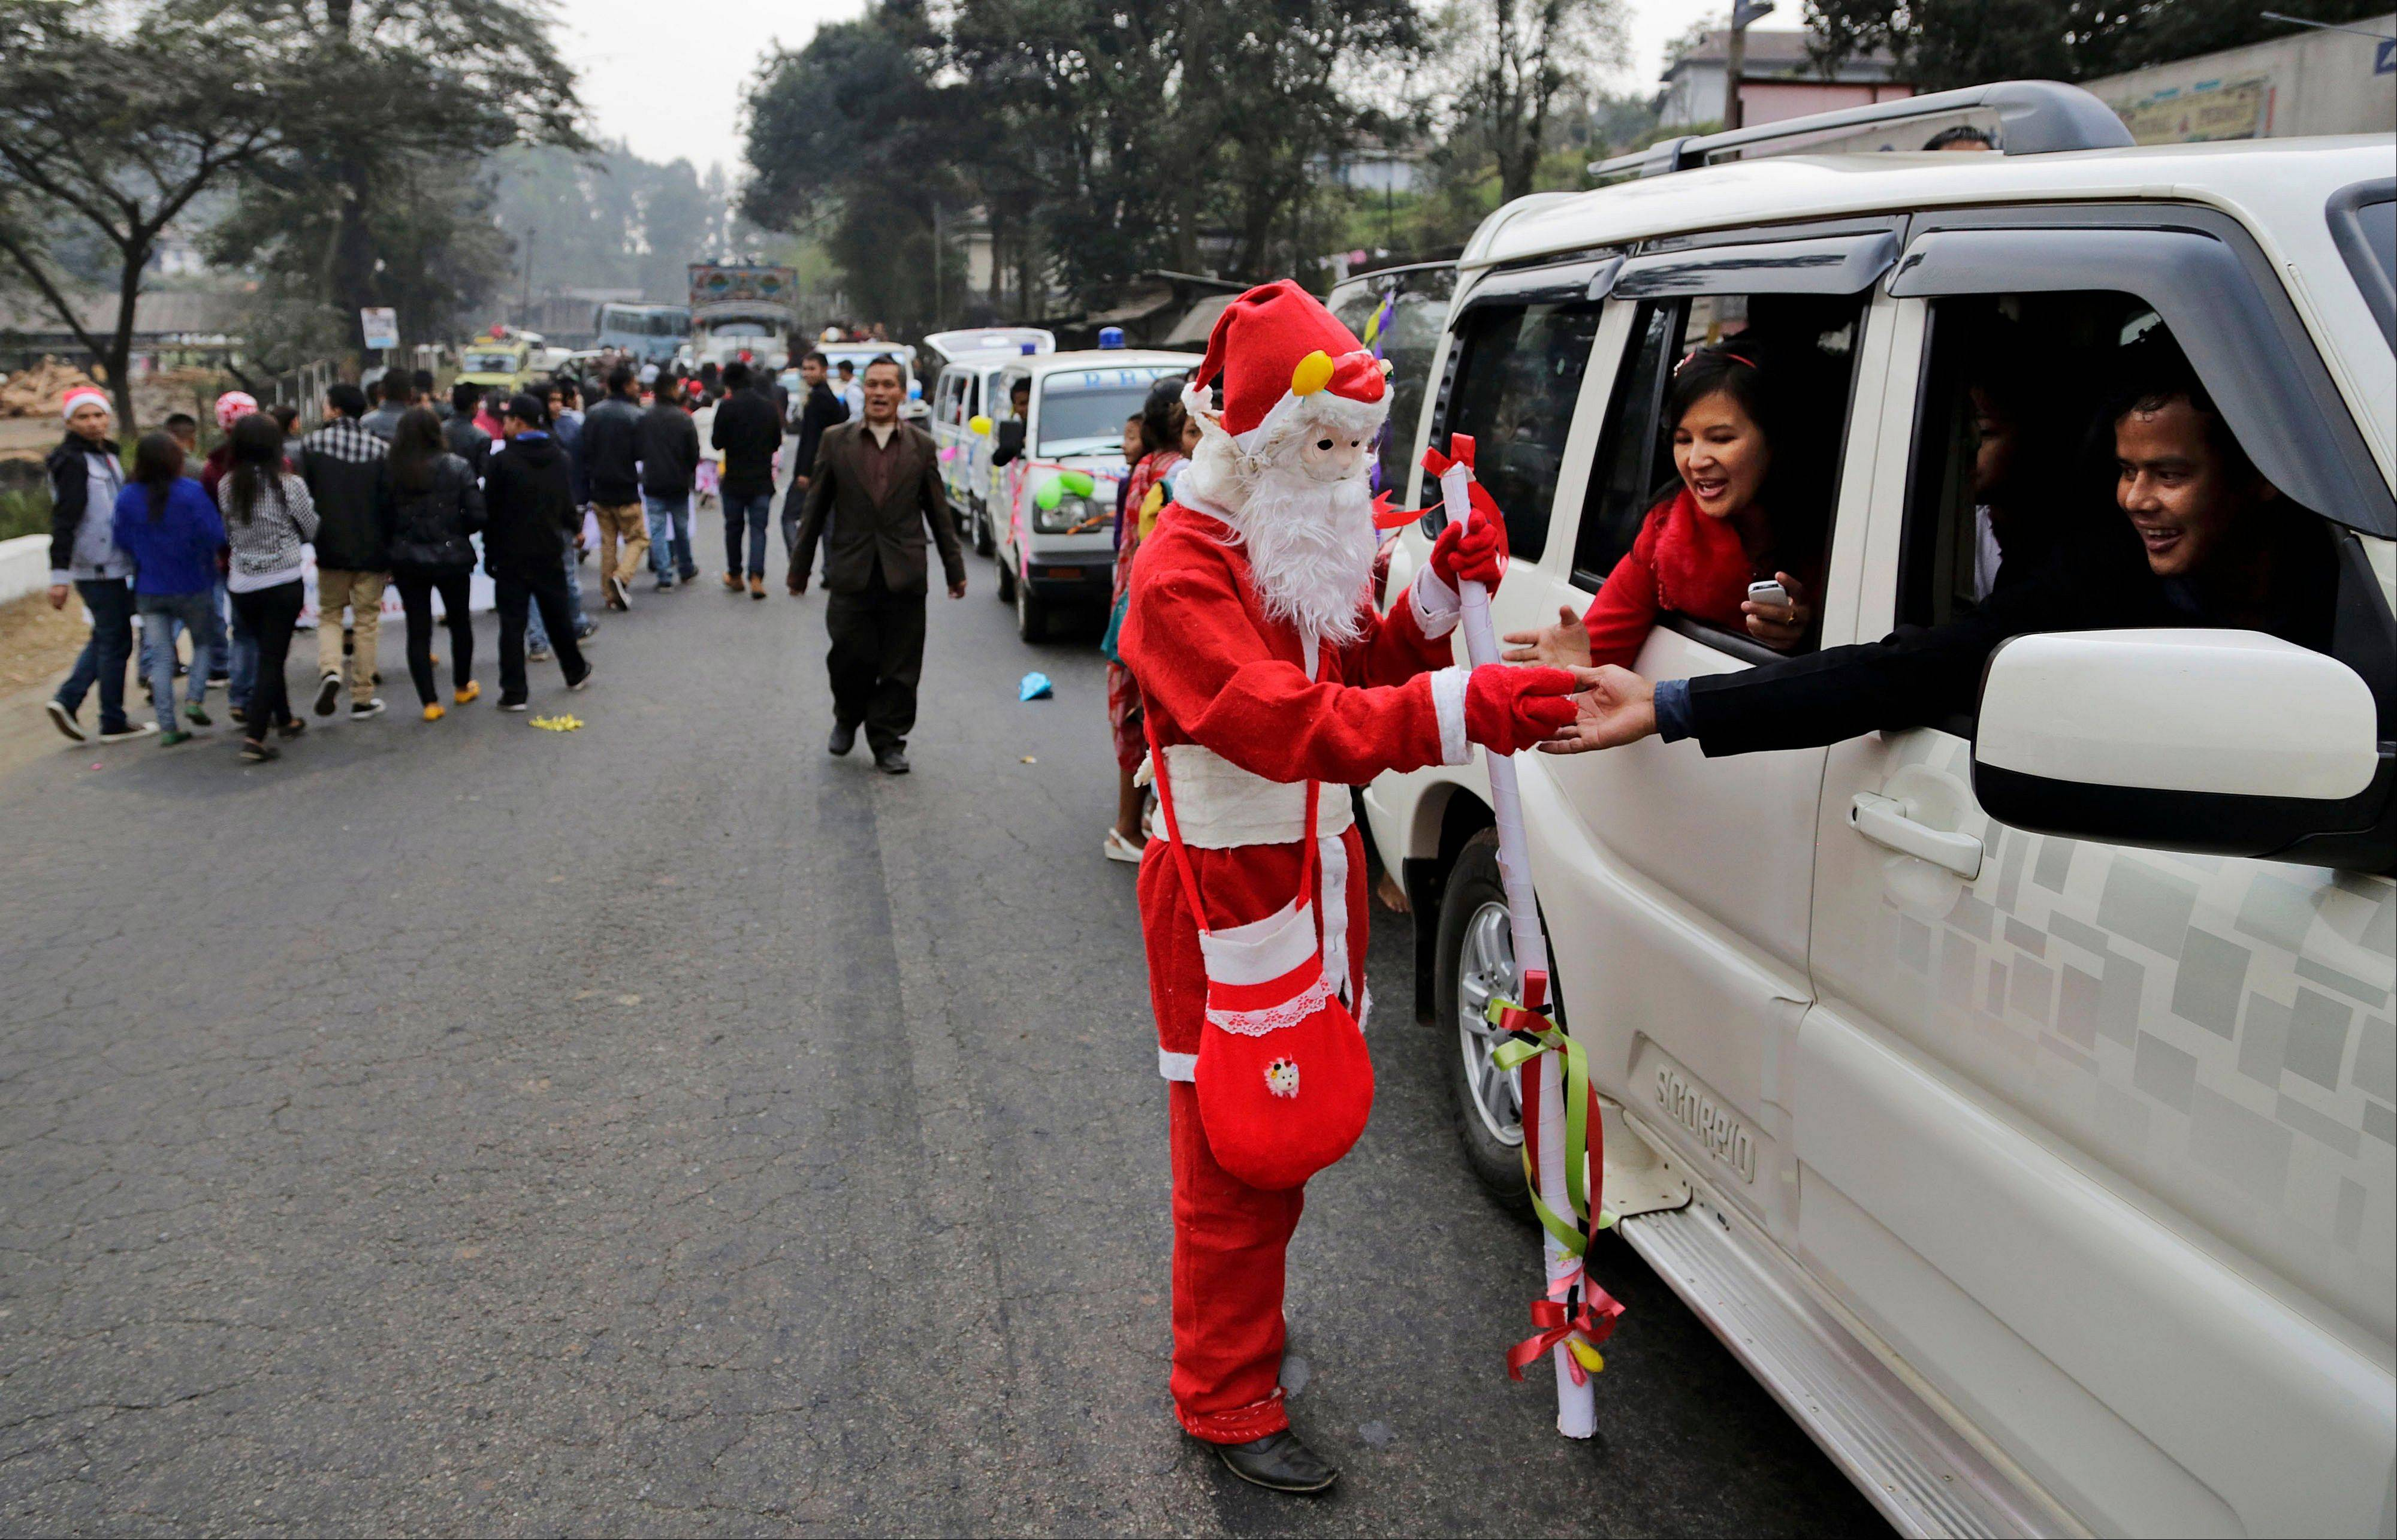 An Indian man dressed as Santa Claus distributes sweets among people in a car ahead of Christmas in Umsning, in Meghalaya, India, Tuesday, Dec. 24, 2013. Though Hindus and Muslims comprise the majority of the population in India, Christmas is celebrated with much fanfare.